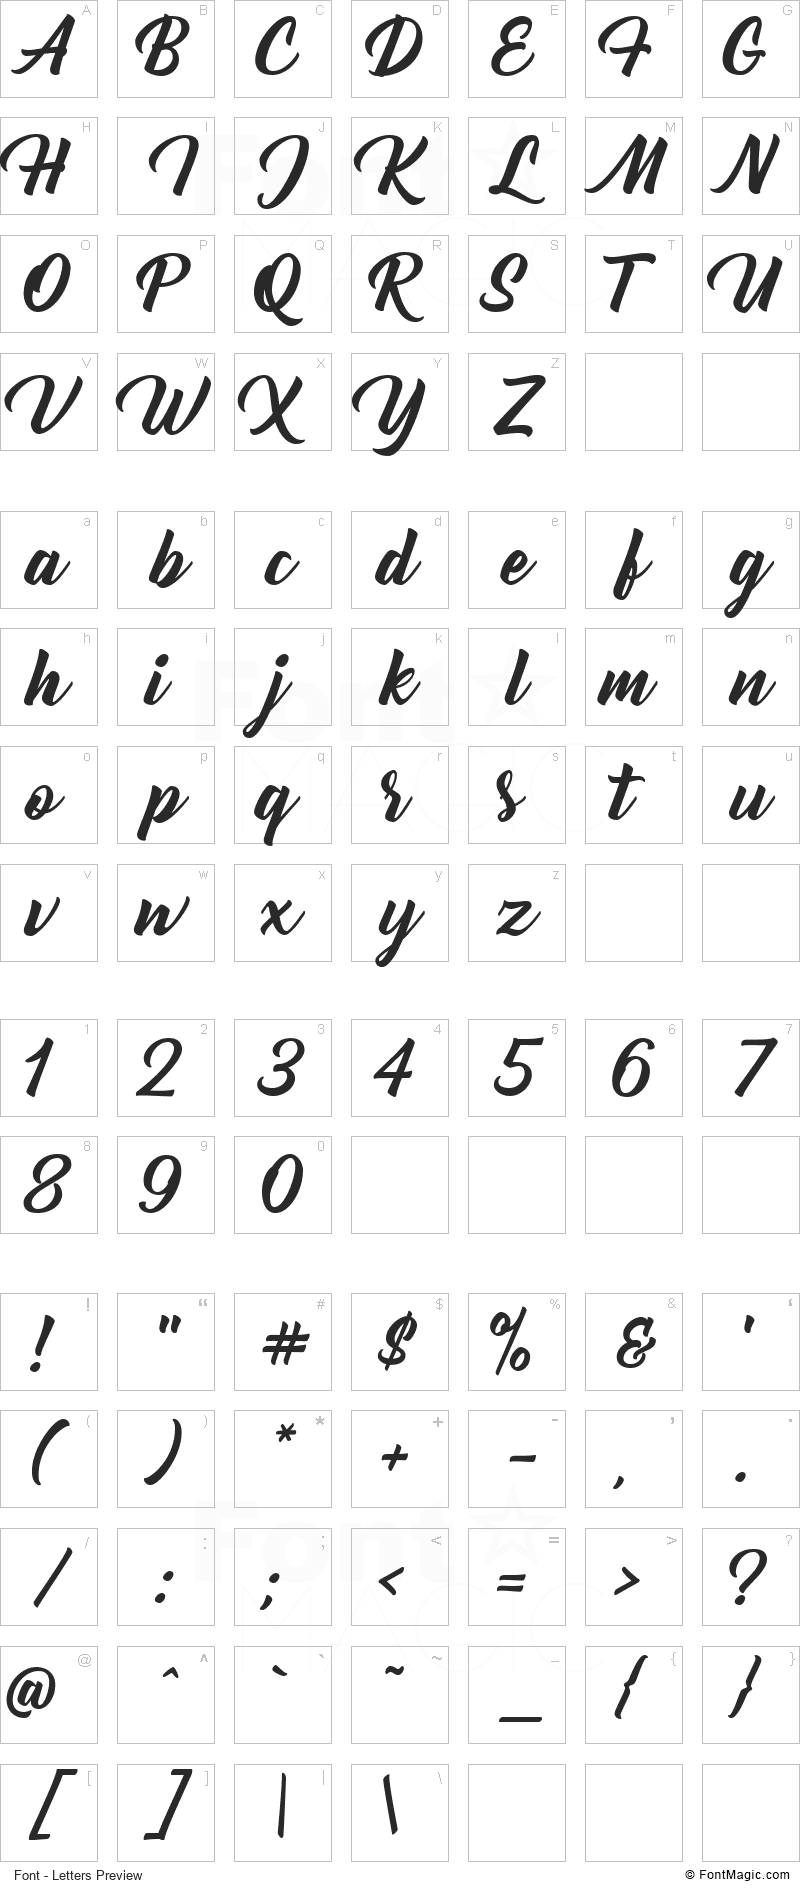 Bernadette Font - All Latters Preview Chart